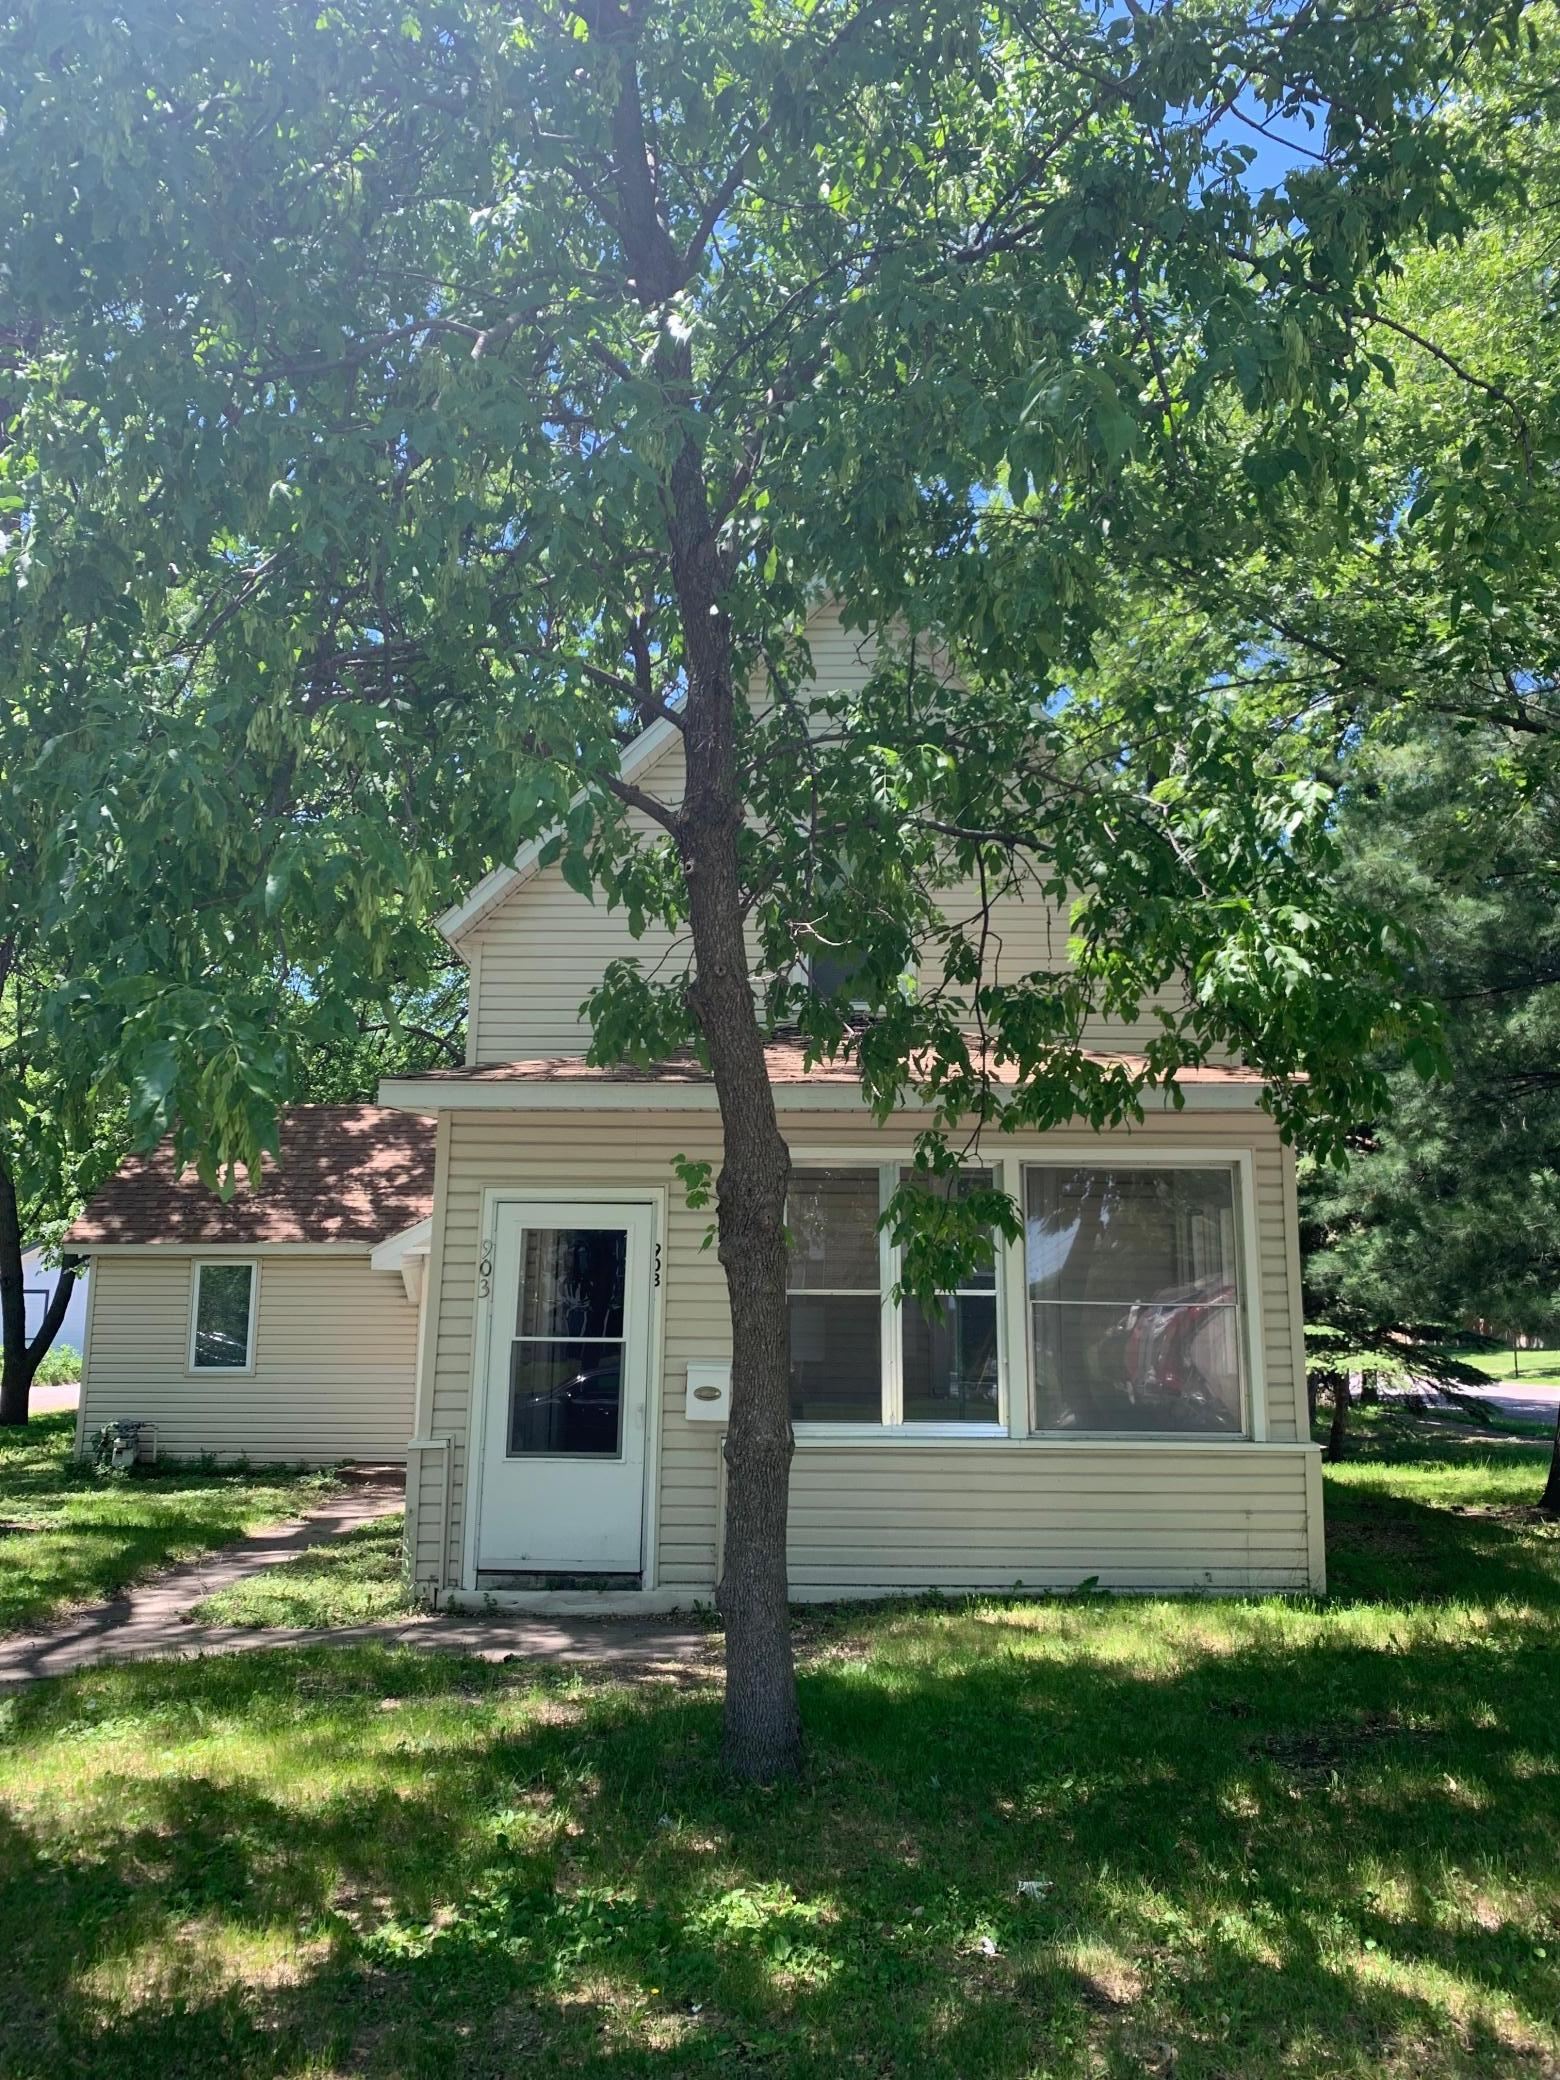 Excellent investment opportunity 3 blocks from St. Cloud State University. Home features 4 good size BRs and 2 baths. Newer stackable washer/dryer, vinyl siding and windows, forced air natural gas furnace for heat. The detached 2 stall garage is a pluswith parking for 4 vehicles in the driveway. The property is currently rented on a month to month lease for $1200 plus utilities monthly. Don't miss out on this excellent investment opportunity.